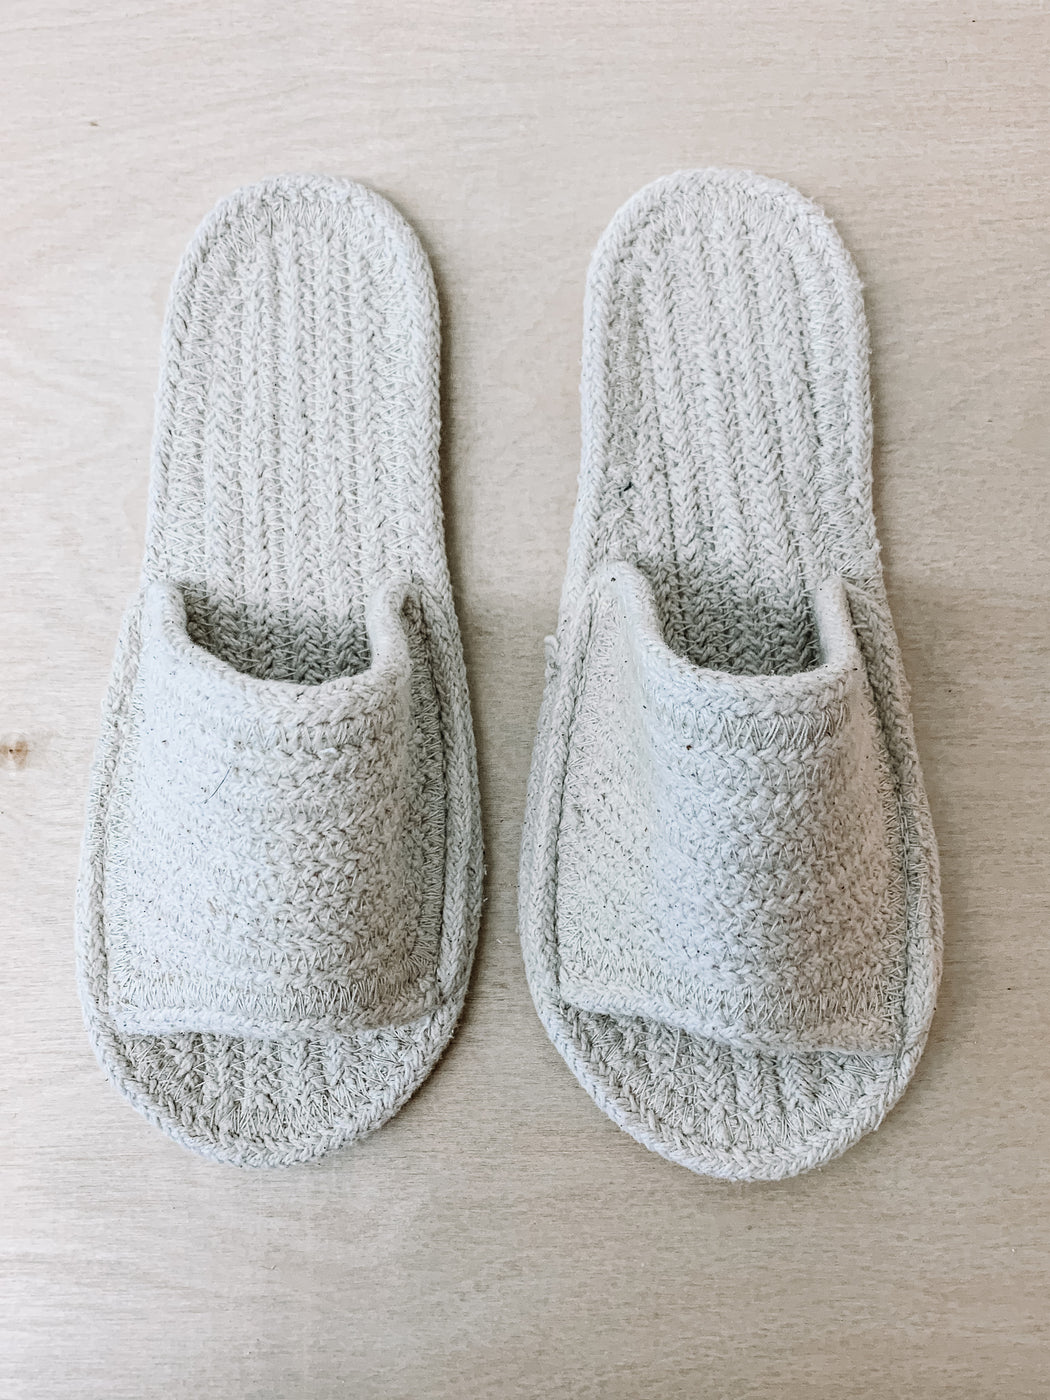 Lore General- Rope Slippers